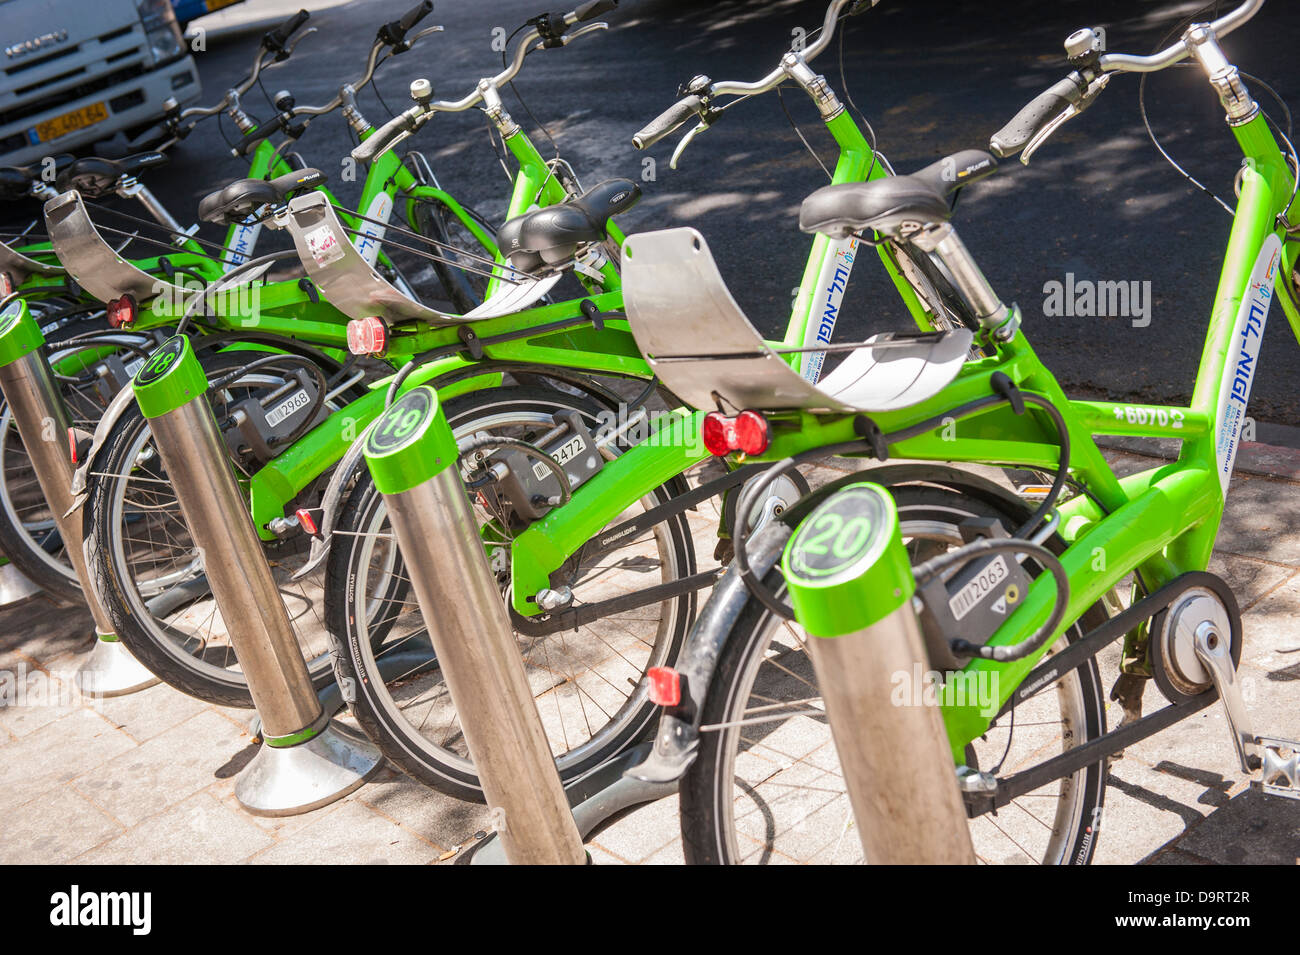 Israel Tel Aviv Tel O Fun bright green self service bike bikes bicycle bicycles hire stand dock docking stands station - Stock Image